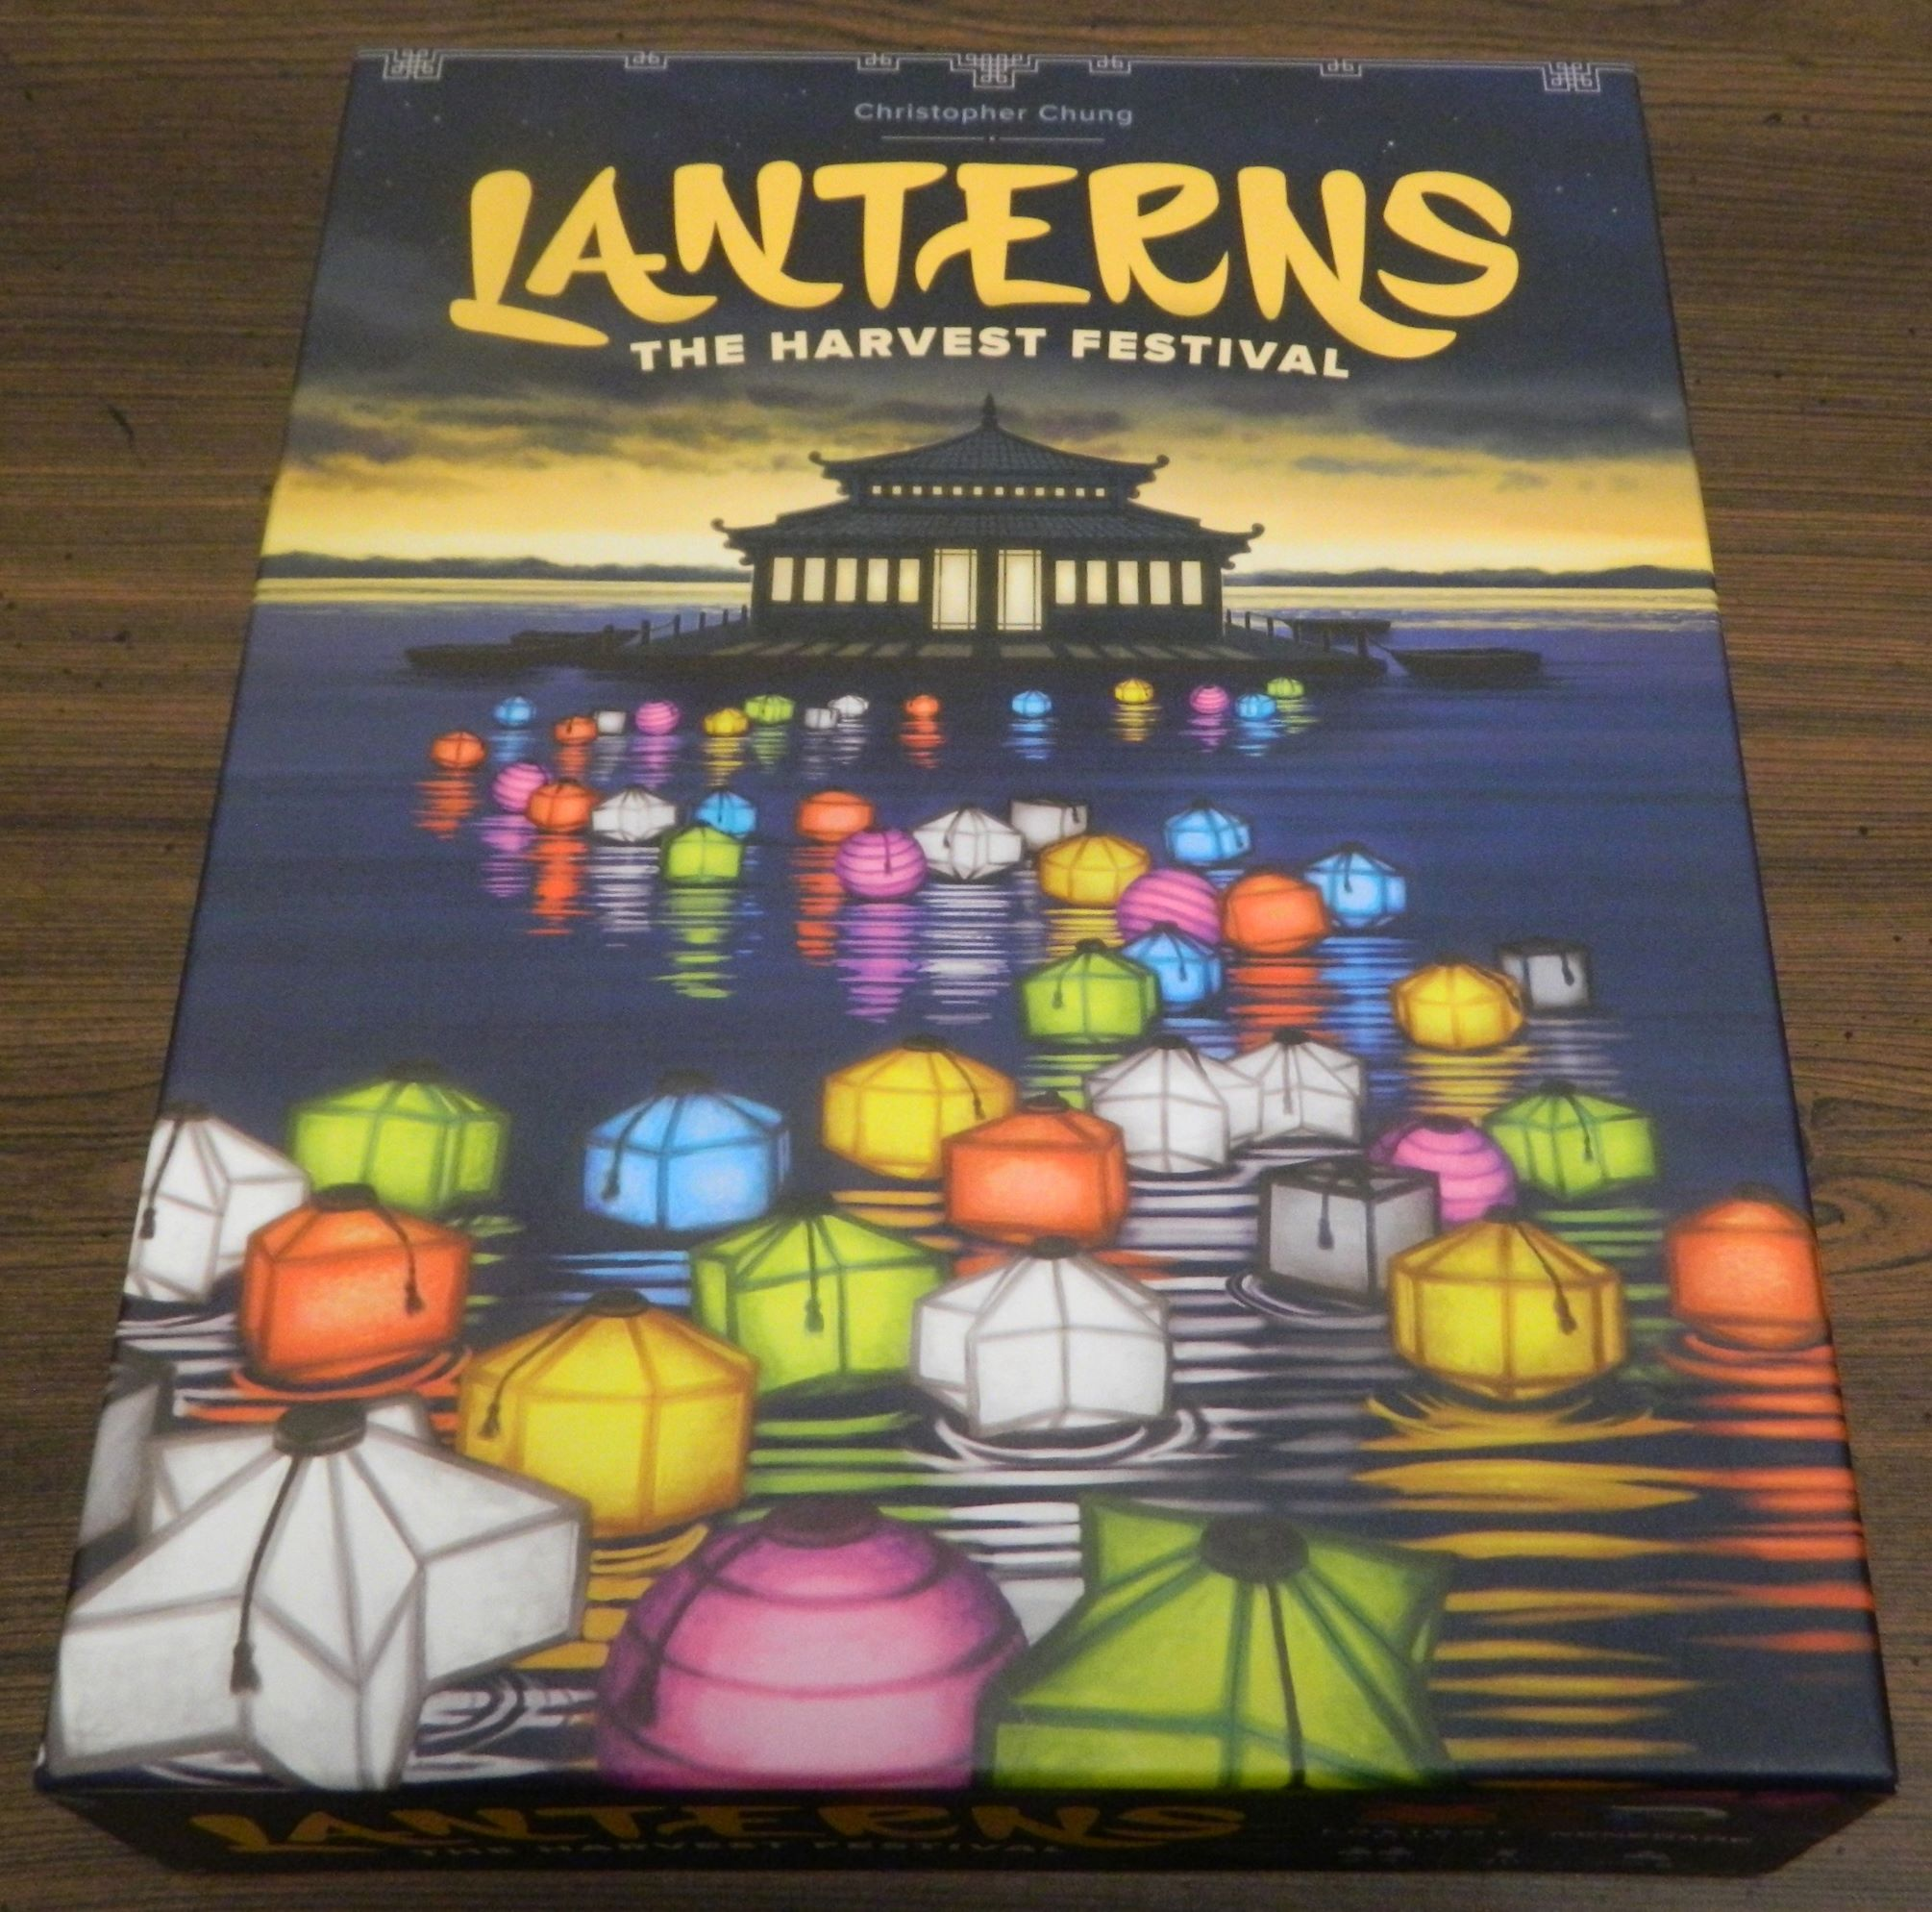 Box for Lanterns The Harvest Festival